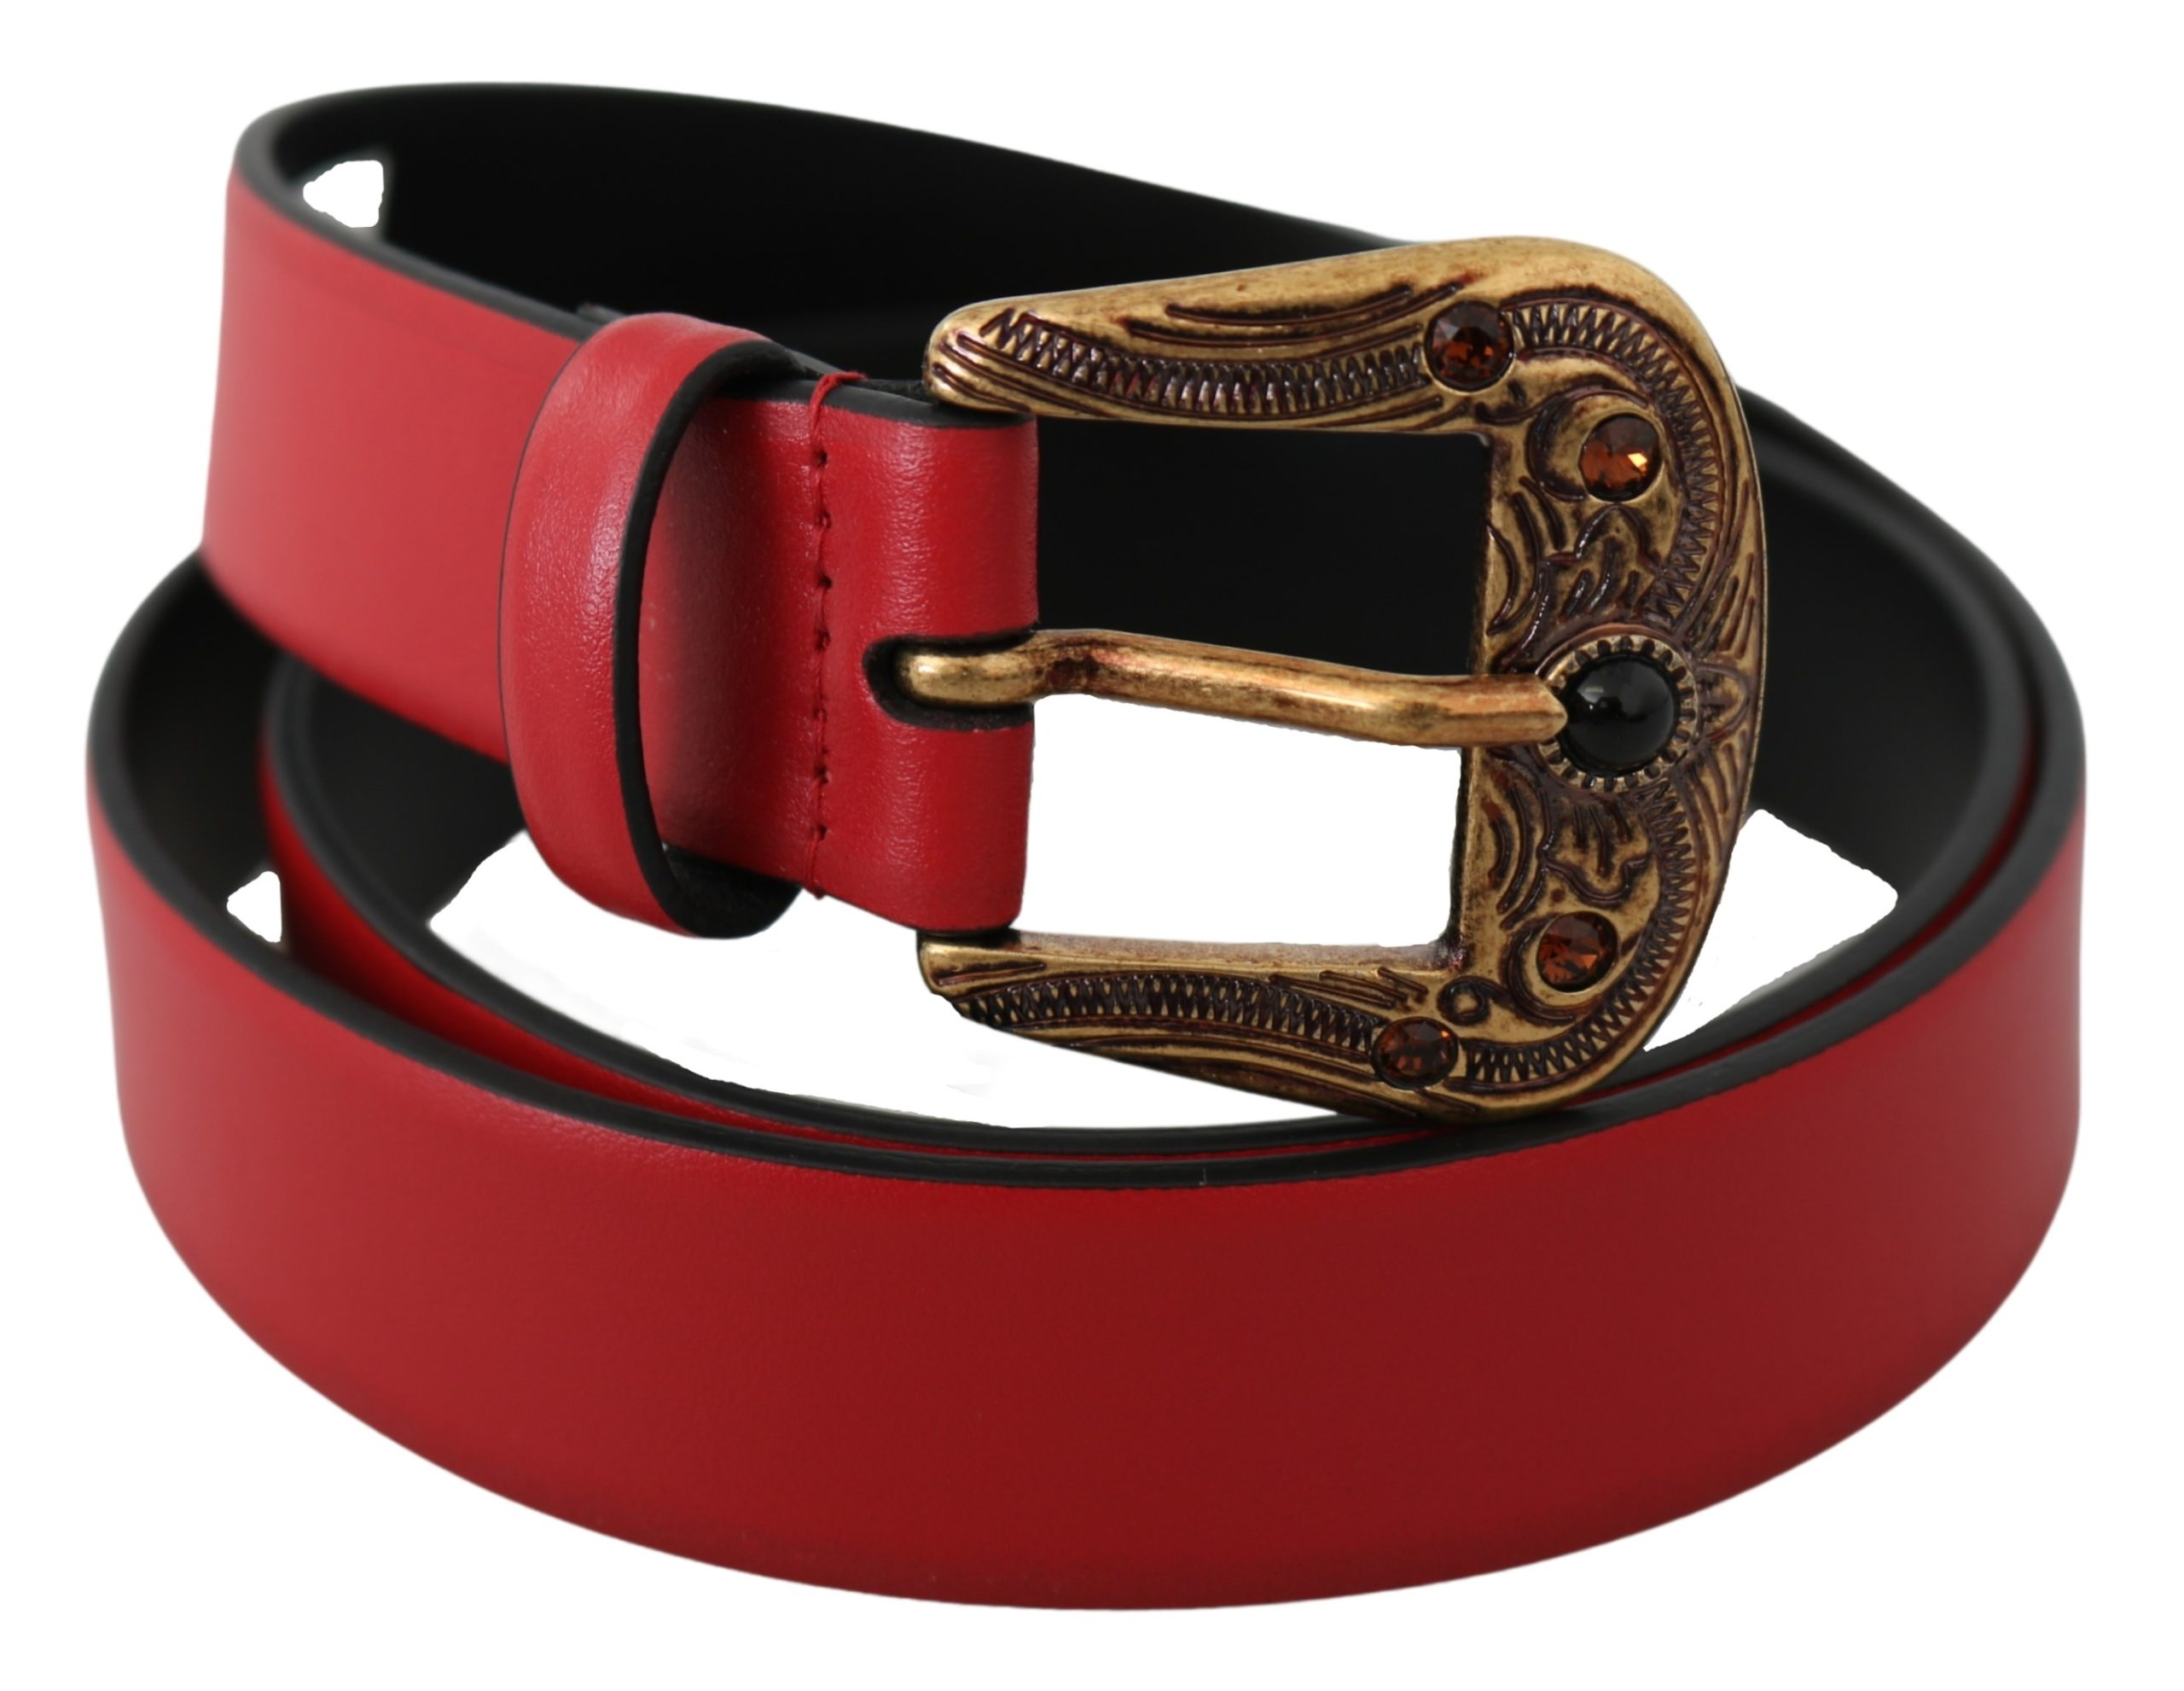 Dolce & Gabbana Women's Pearl Buckle Leather Belt Red BEL60768 - 90 cm / 36 Inches